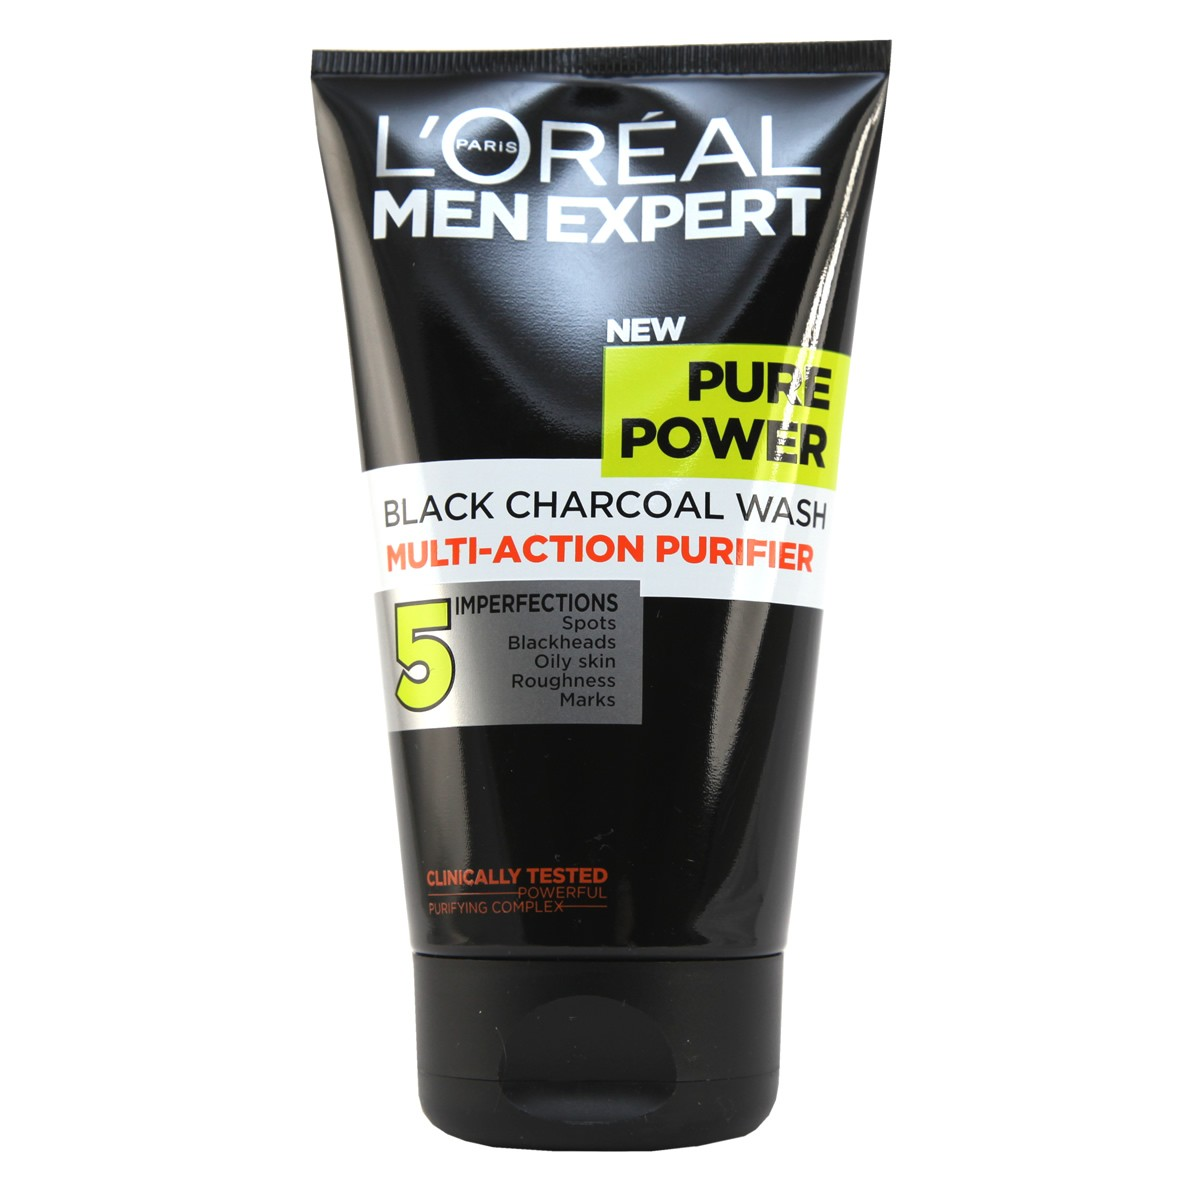 L'Oreal Paris Men Expert  Pure Power Black Charcoal Wash